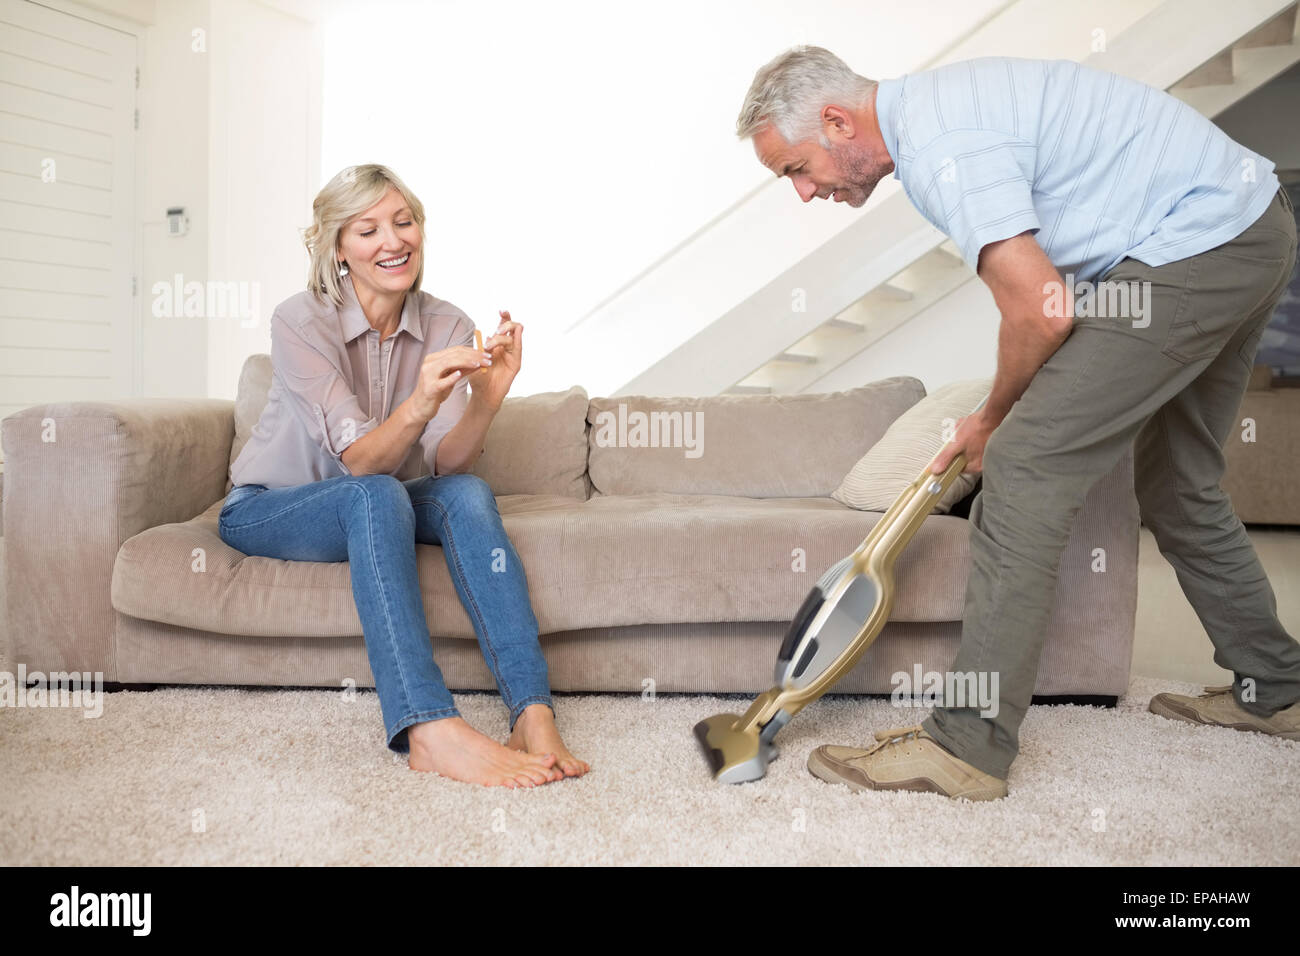 Frau Fliegender Teppich Woman Vacuuming Room Stockfotos And Woman Vacuuming Room